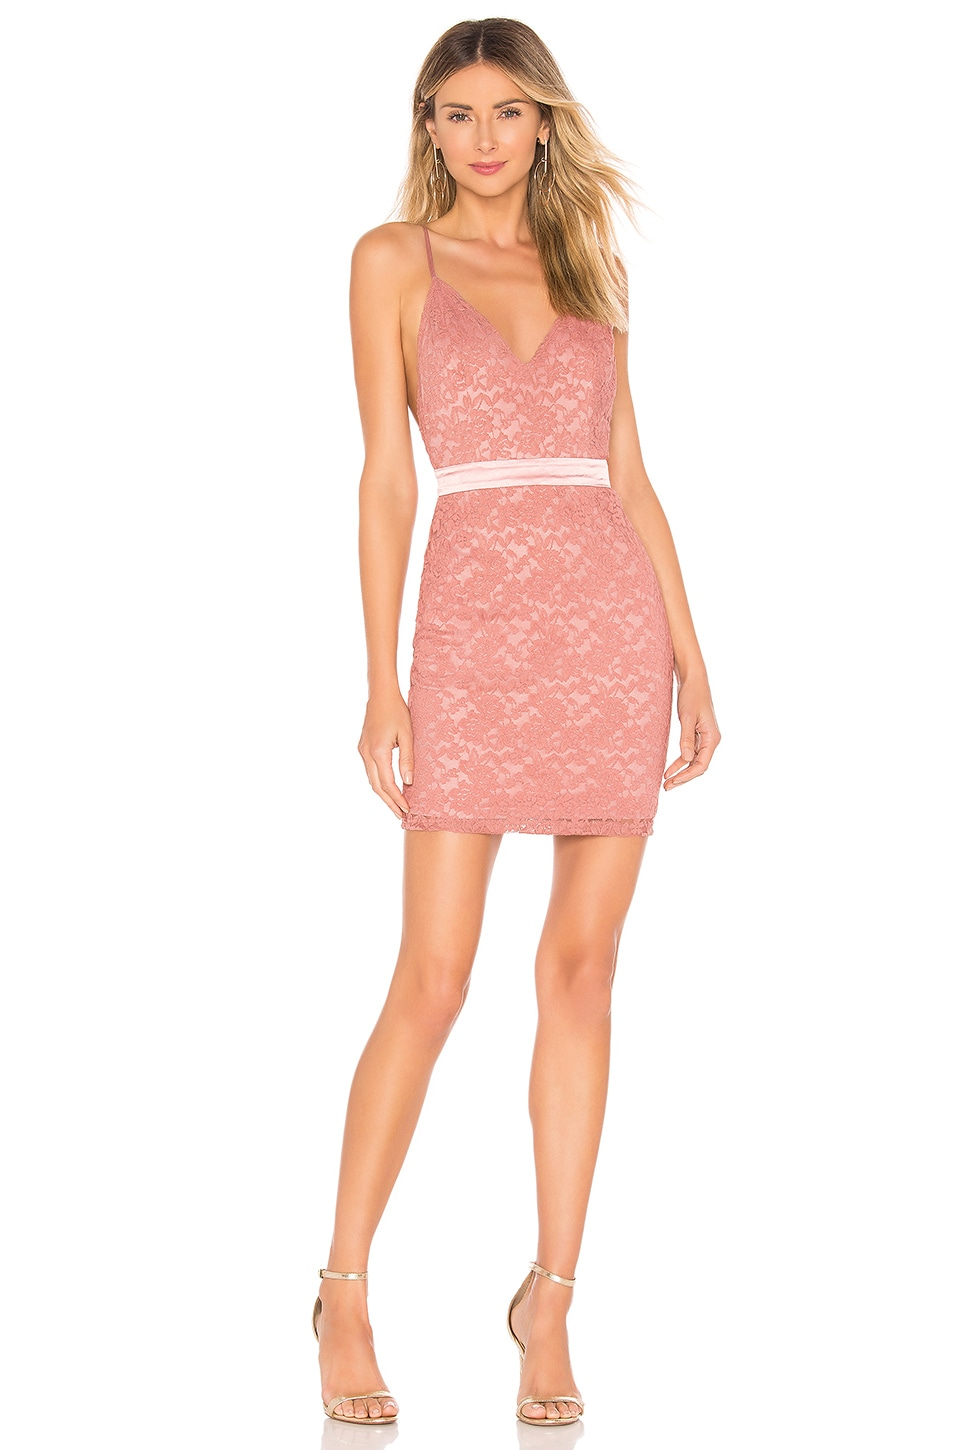 About Us Elona Lace Mini Dress in Rose Pink